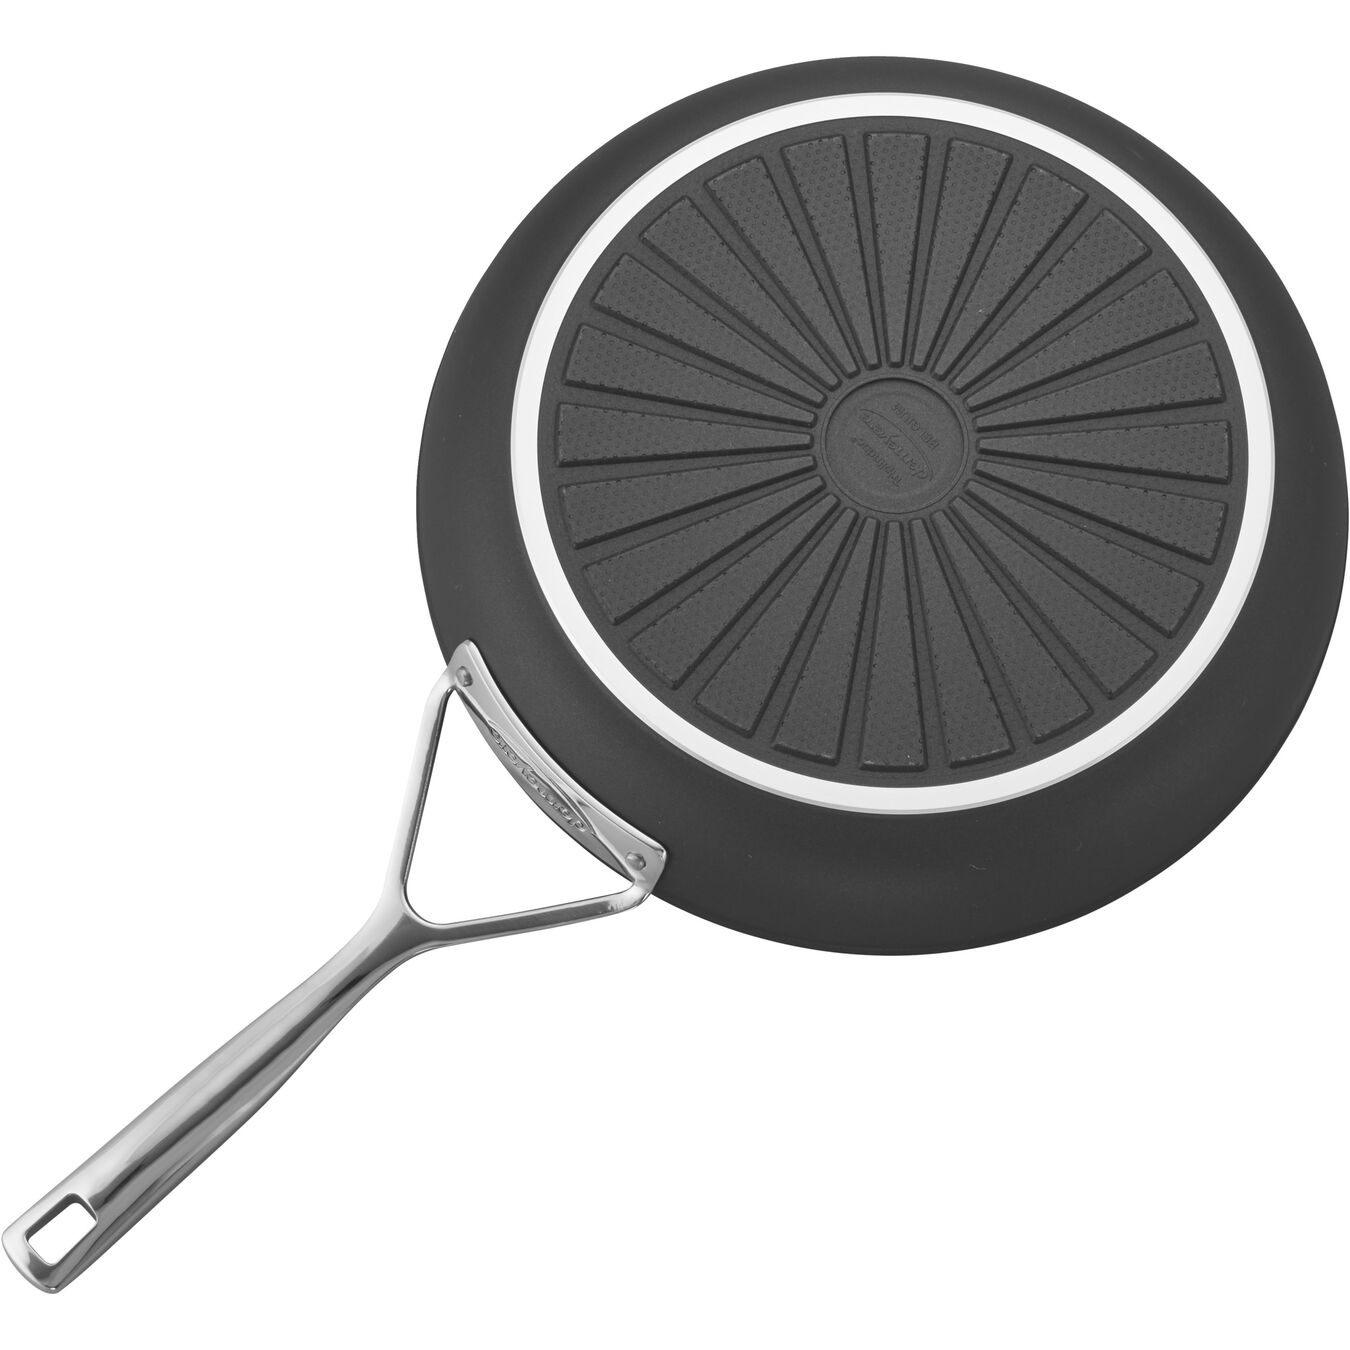 12-inch, Aluminum, Non-stick Frying pan,,large 3